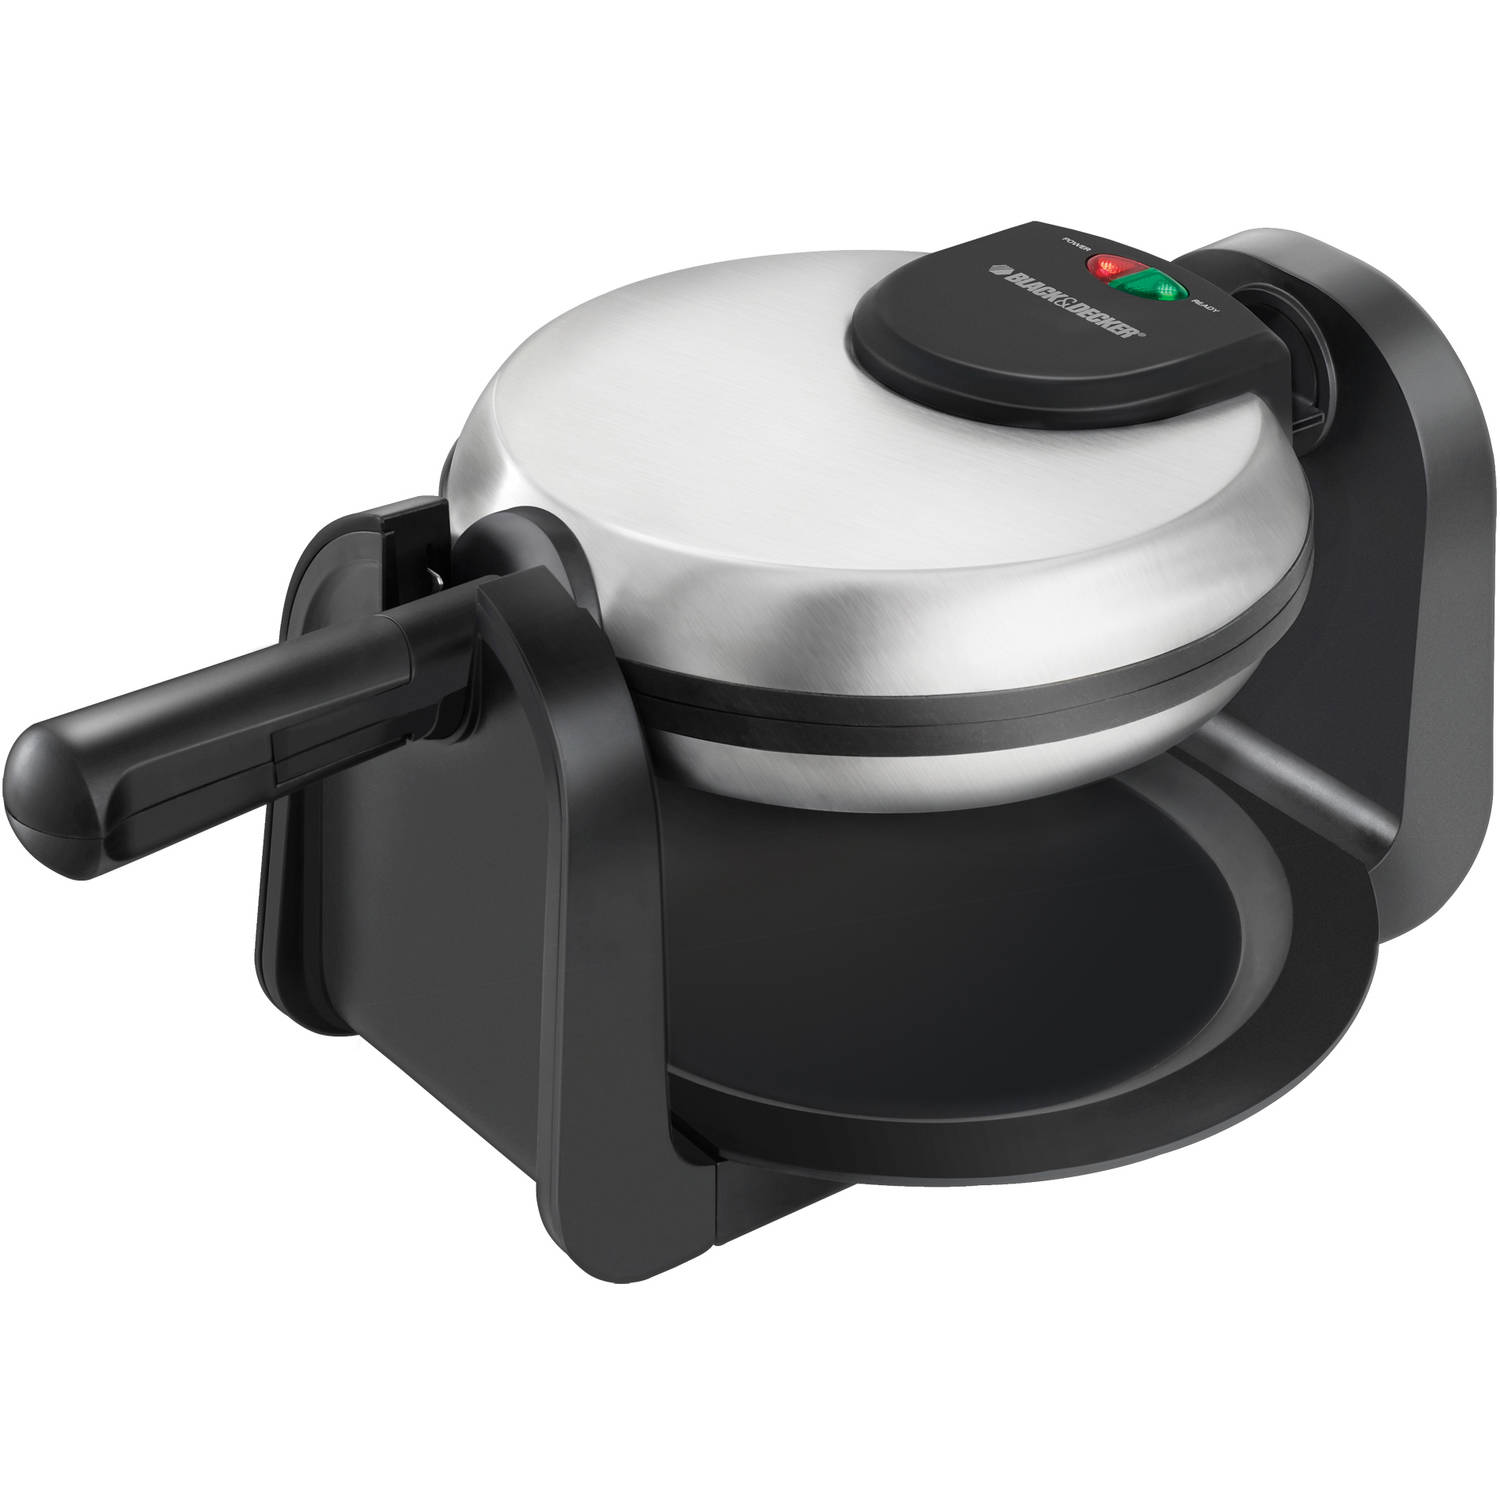 BLACK+DECKER Rotary Flip Waffle Maker, Non-Stick, WM1404S